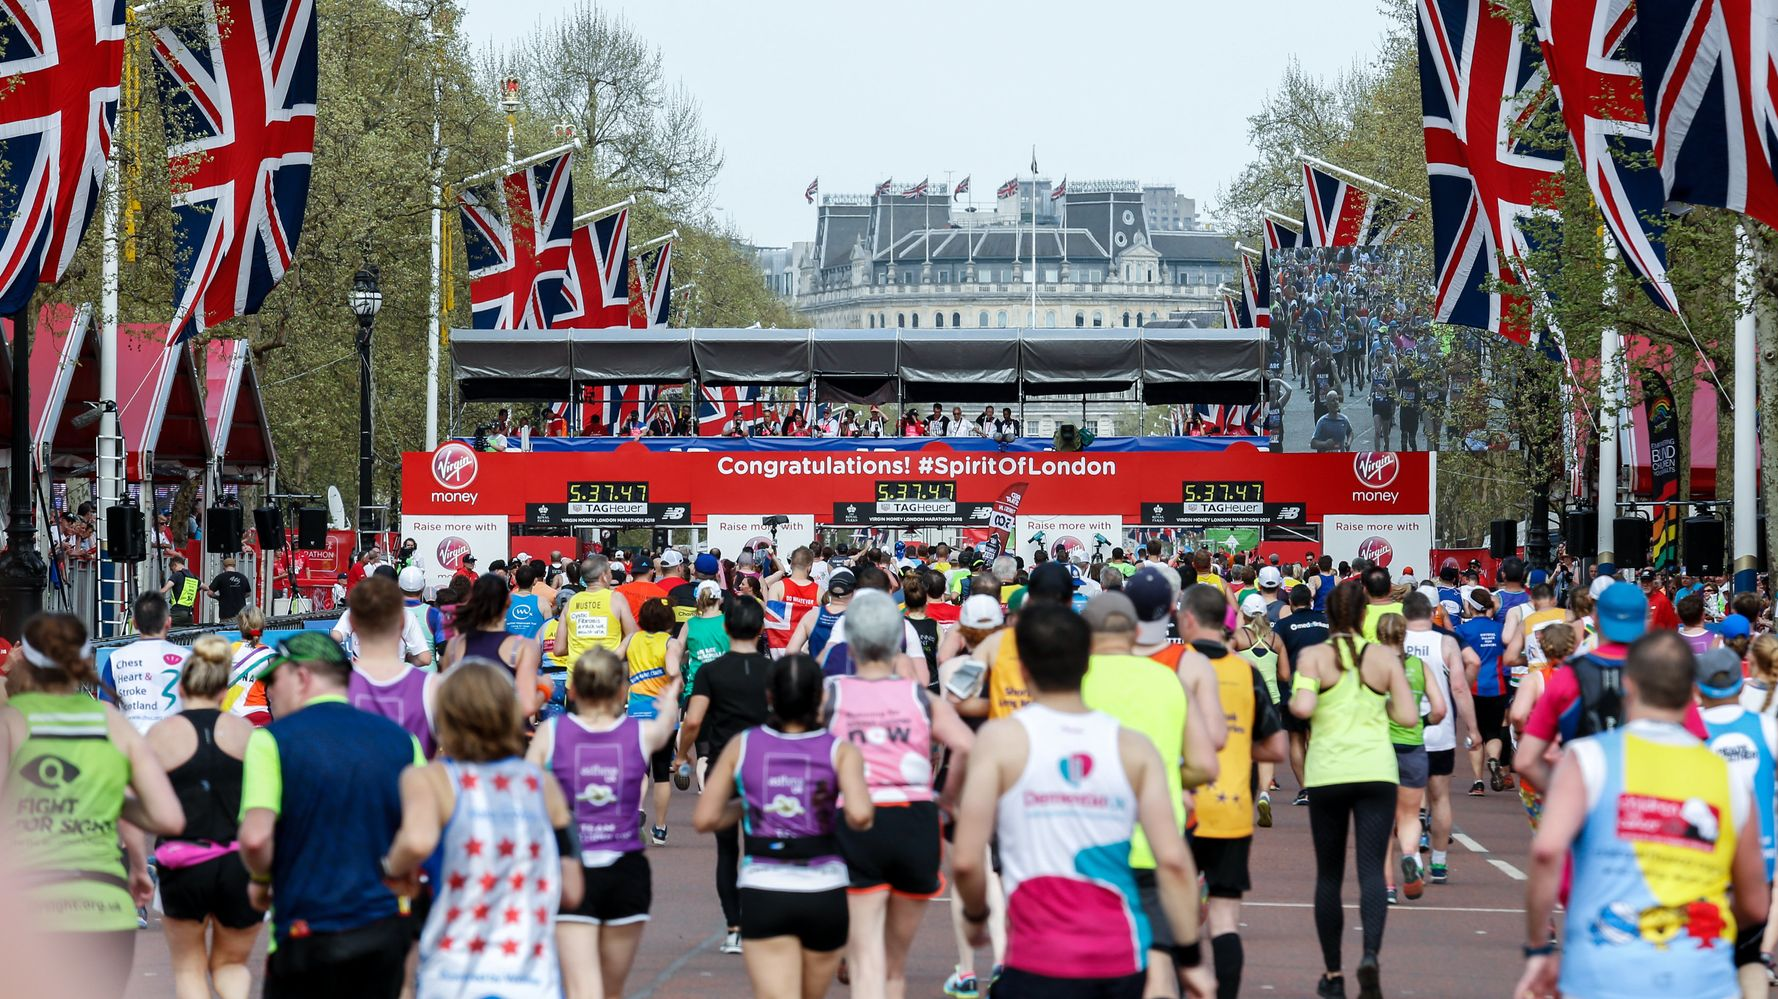 Marathon Training Plan: What You Need To Do A Month, Fortnight, Week And Day Before The Race